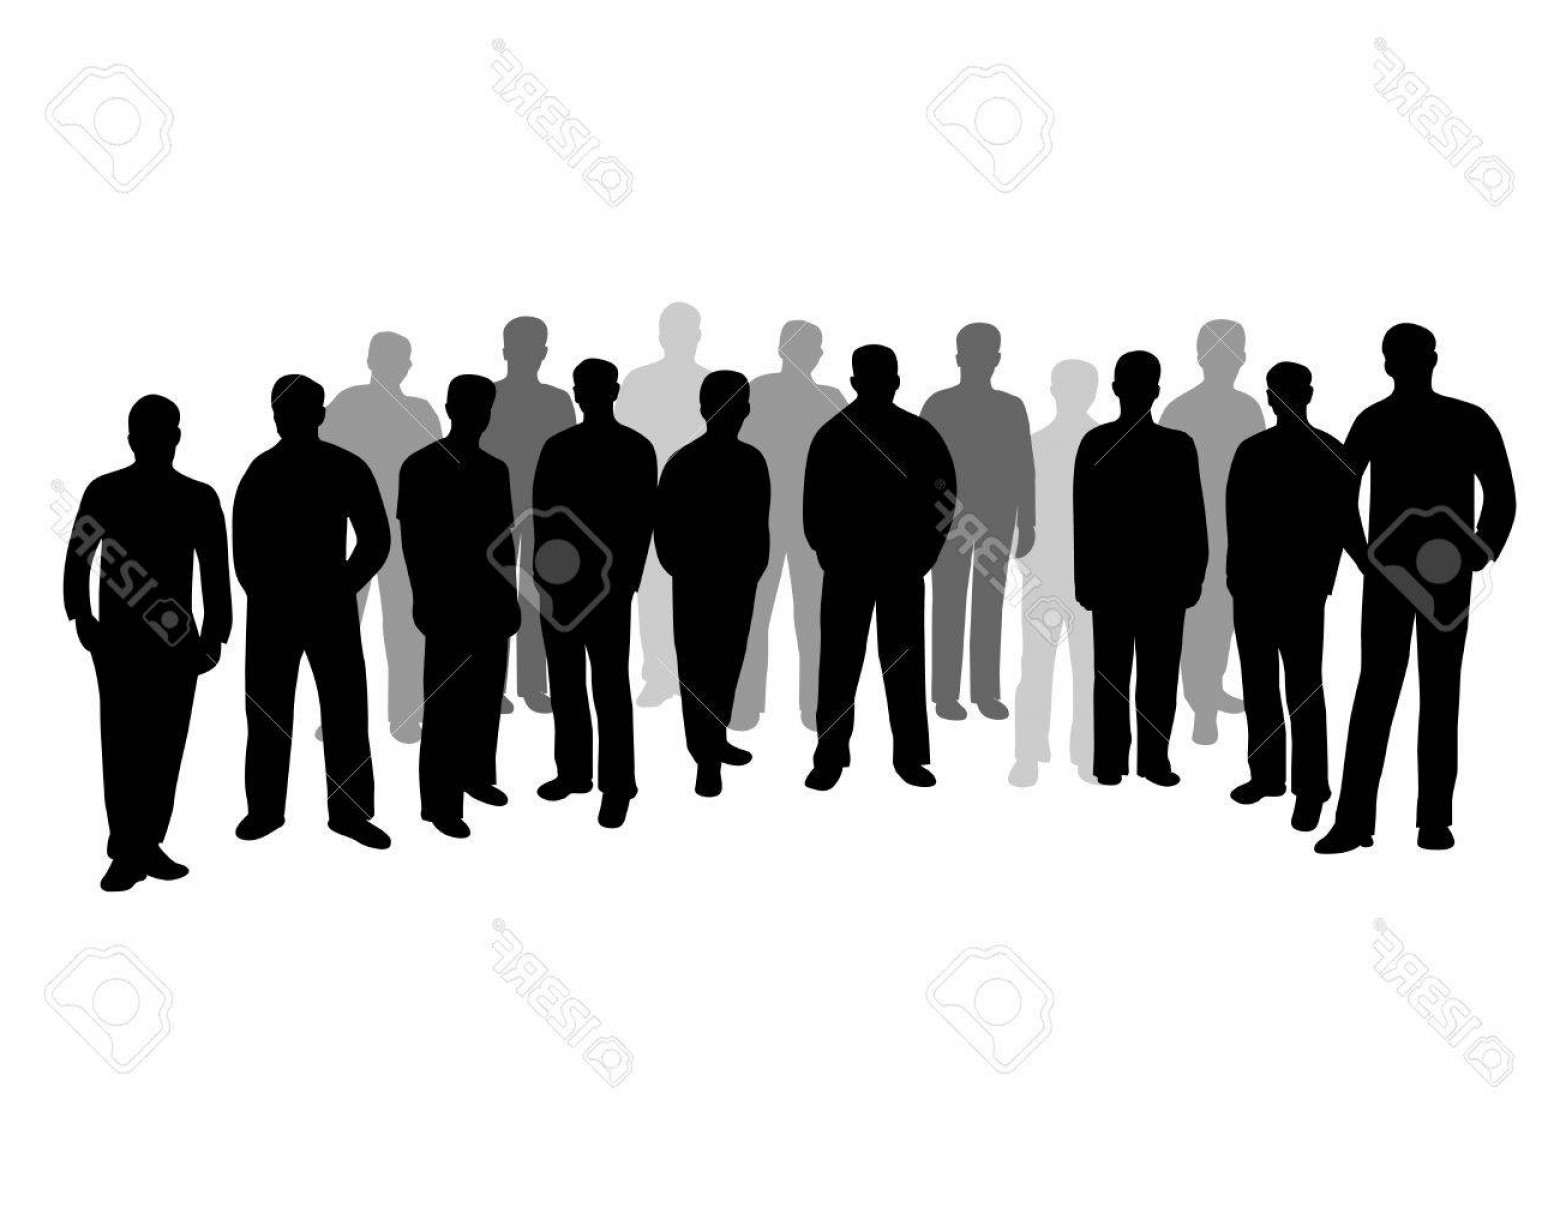 Sillouhette Vector Group: Photostock Vector Group Of Business People Businessmen Silhouette Isolated On White Background